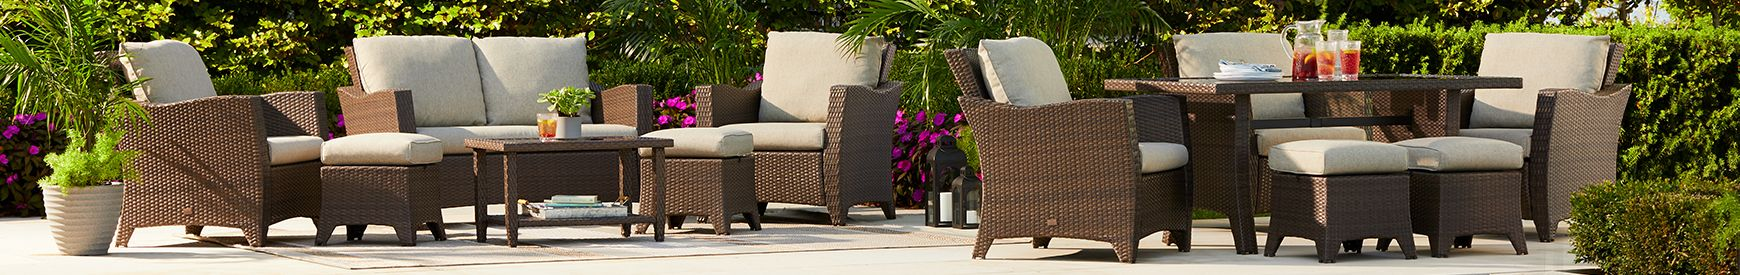 Portland Patio Furniture Collection By Canvas Canadian Tire